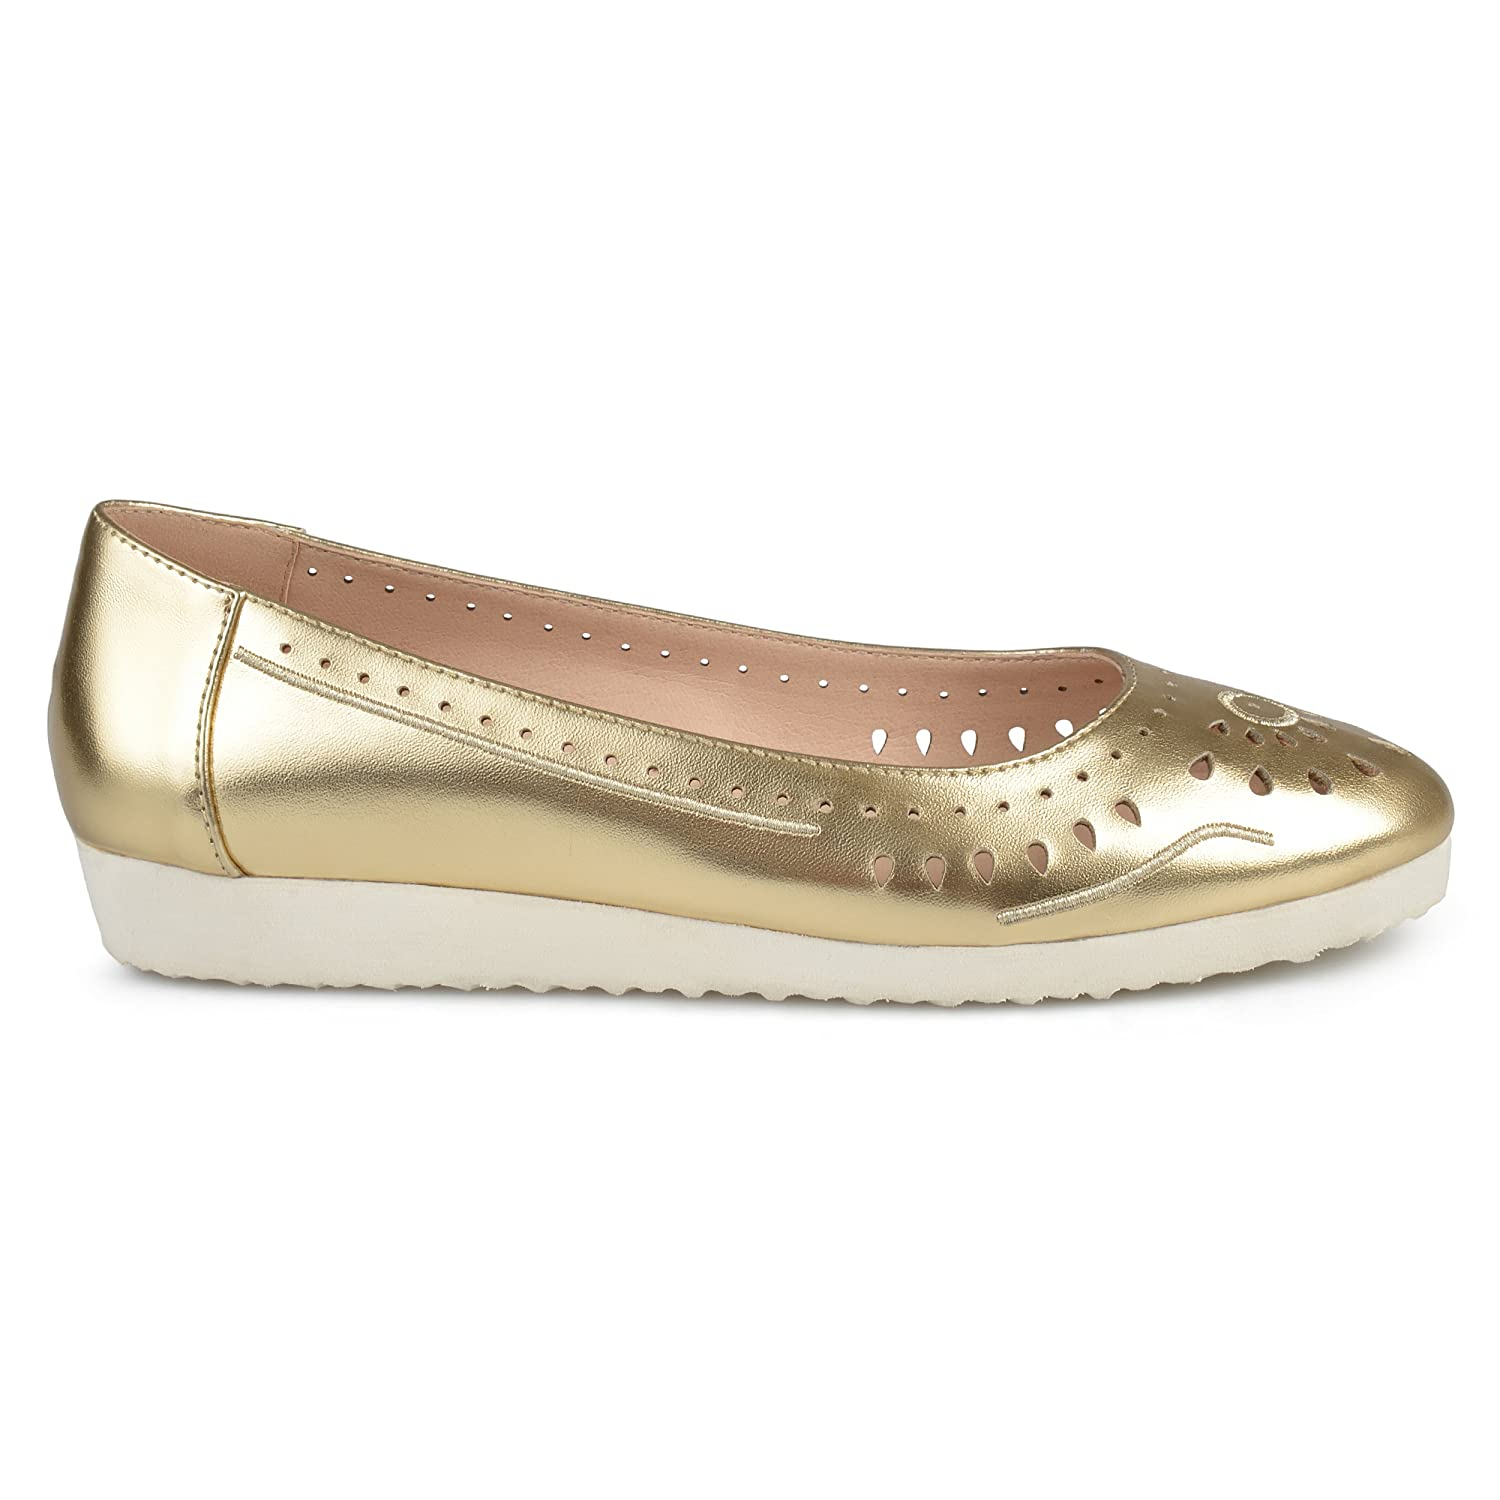 Brinley Co Womens Cyra Faux Leather Laser-Cut Comfort-Sole Embroidered Lightweight Flats B075738CWV 6 B(M) US|Gold